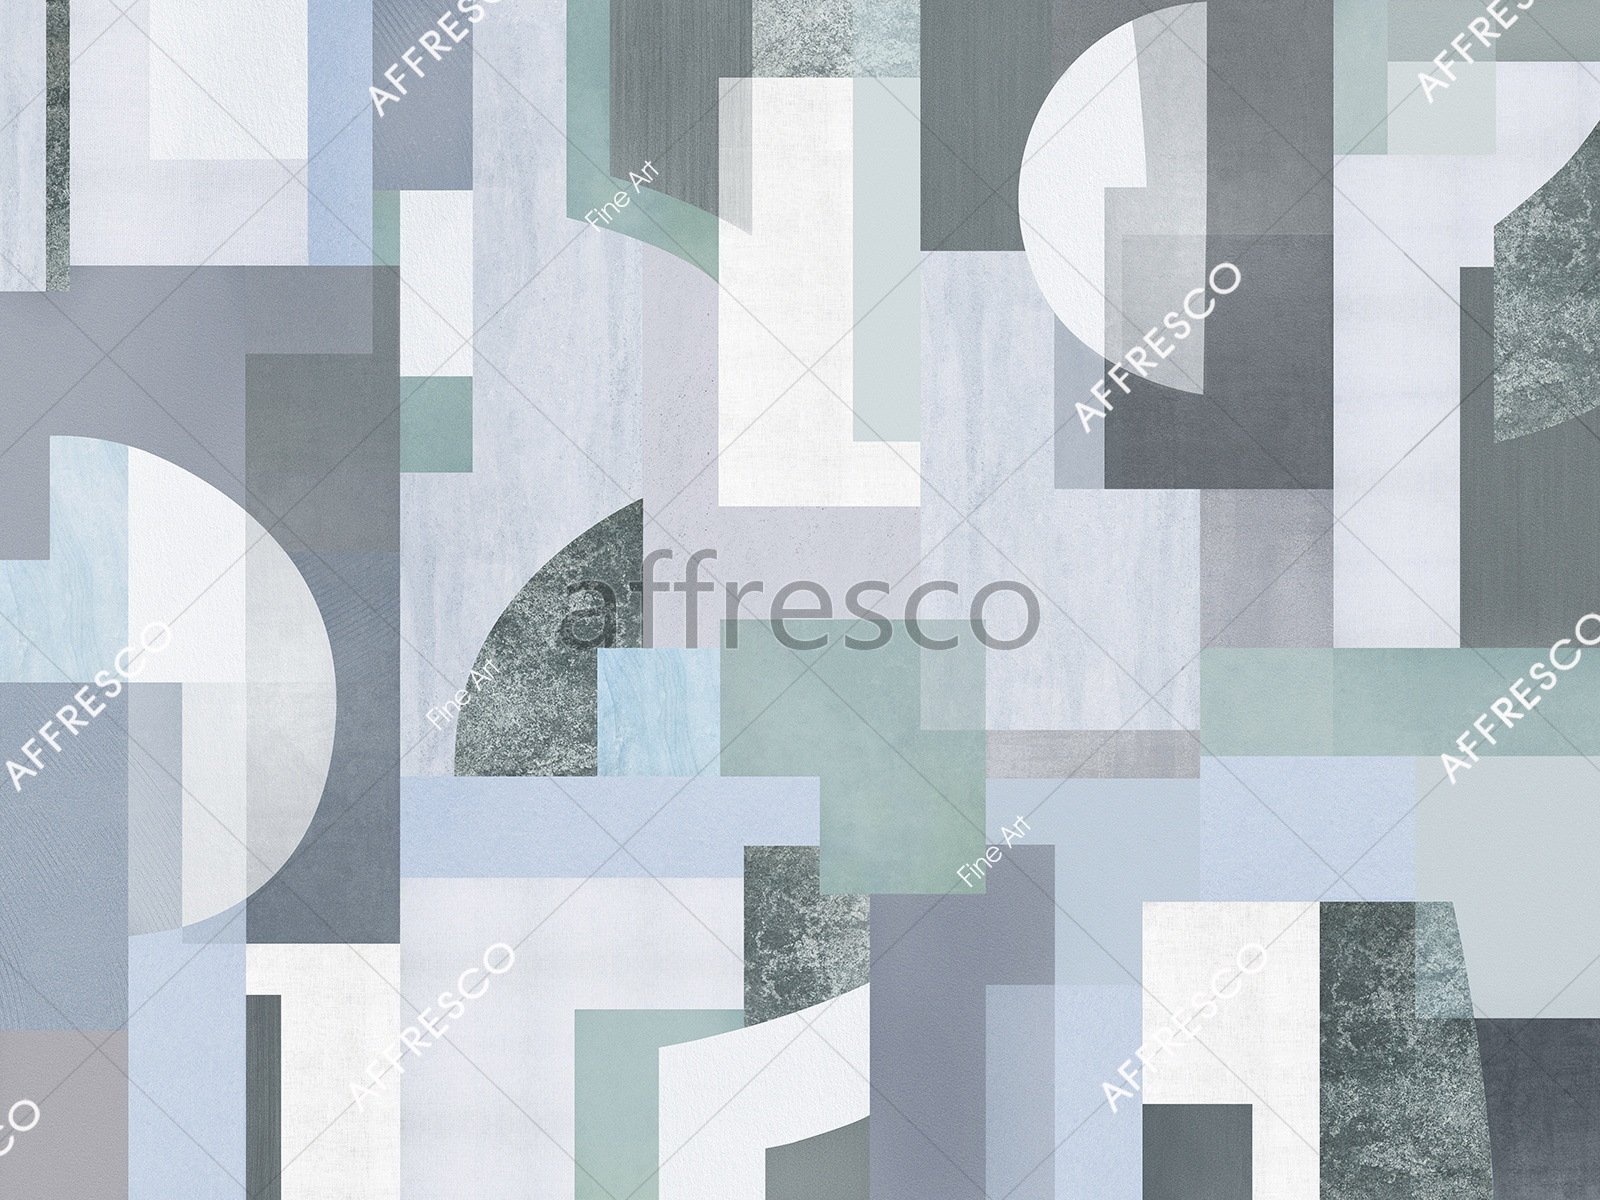 RE929-COL4 | Fine Art | Affresco Factory